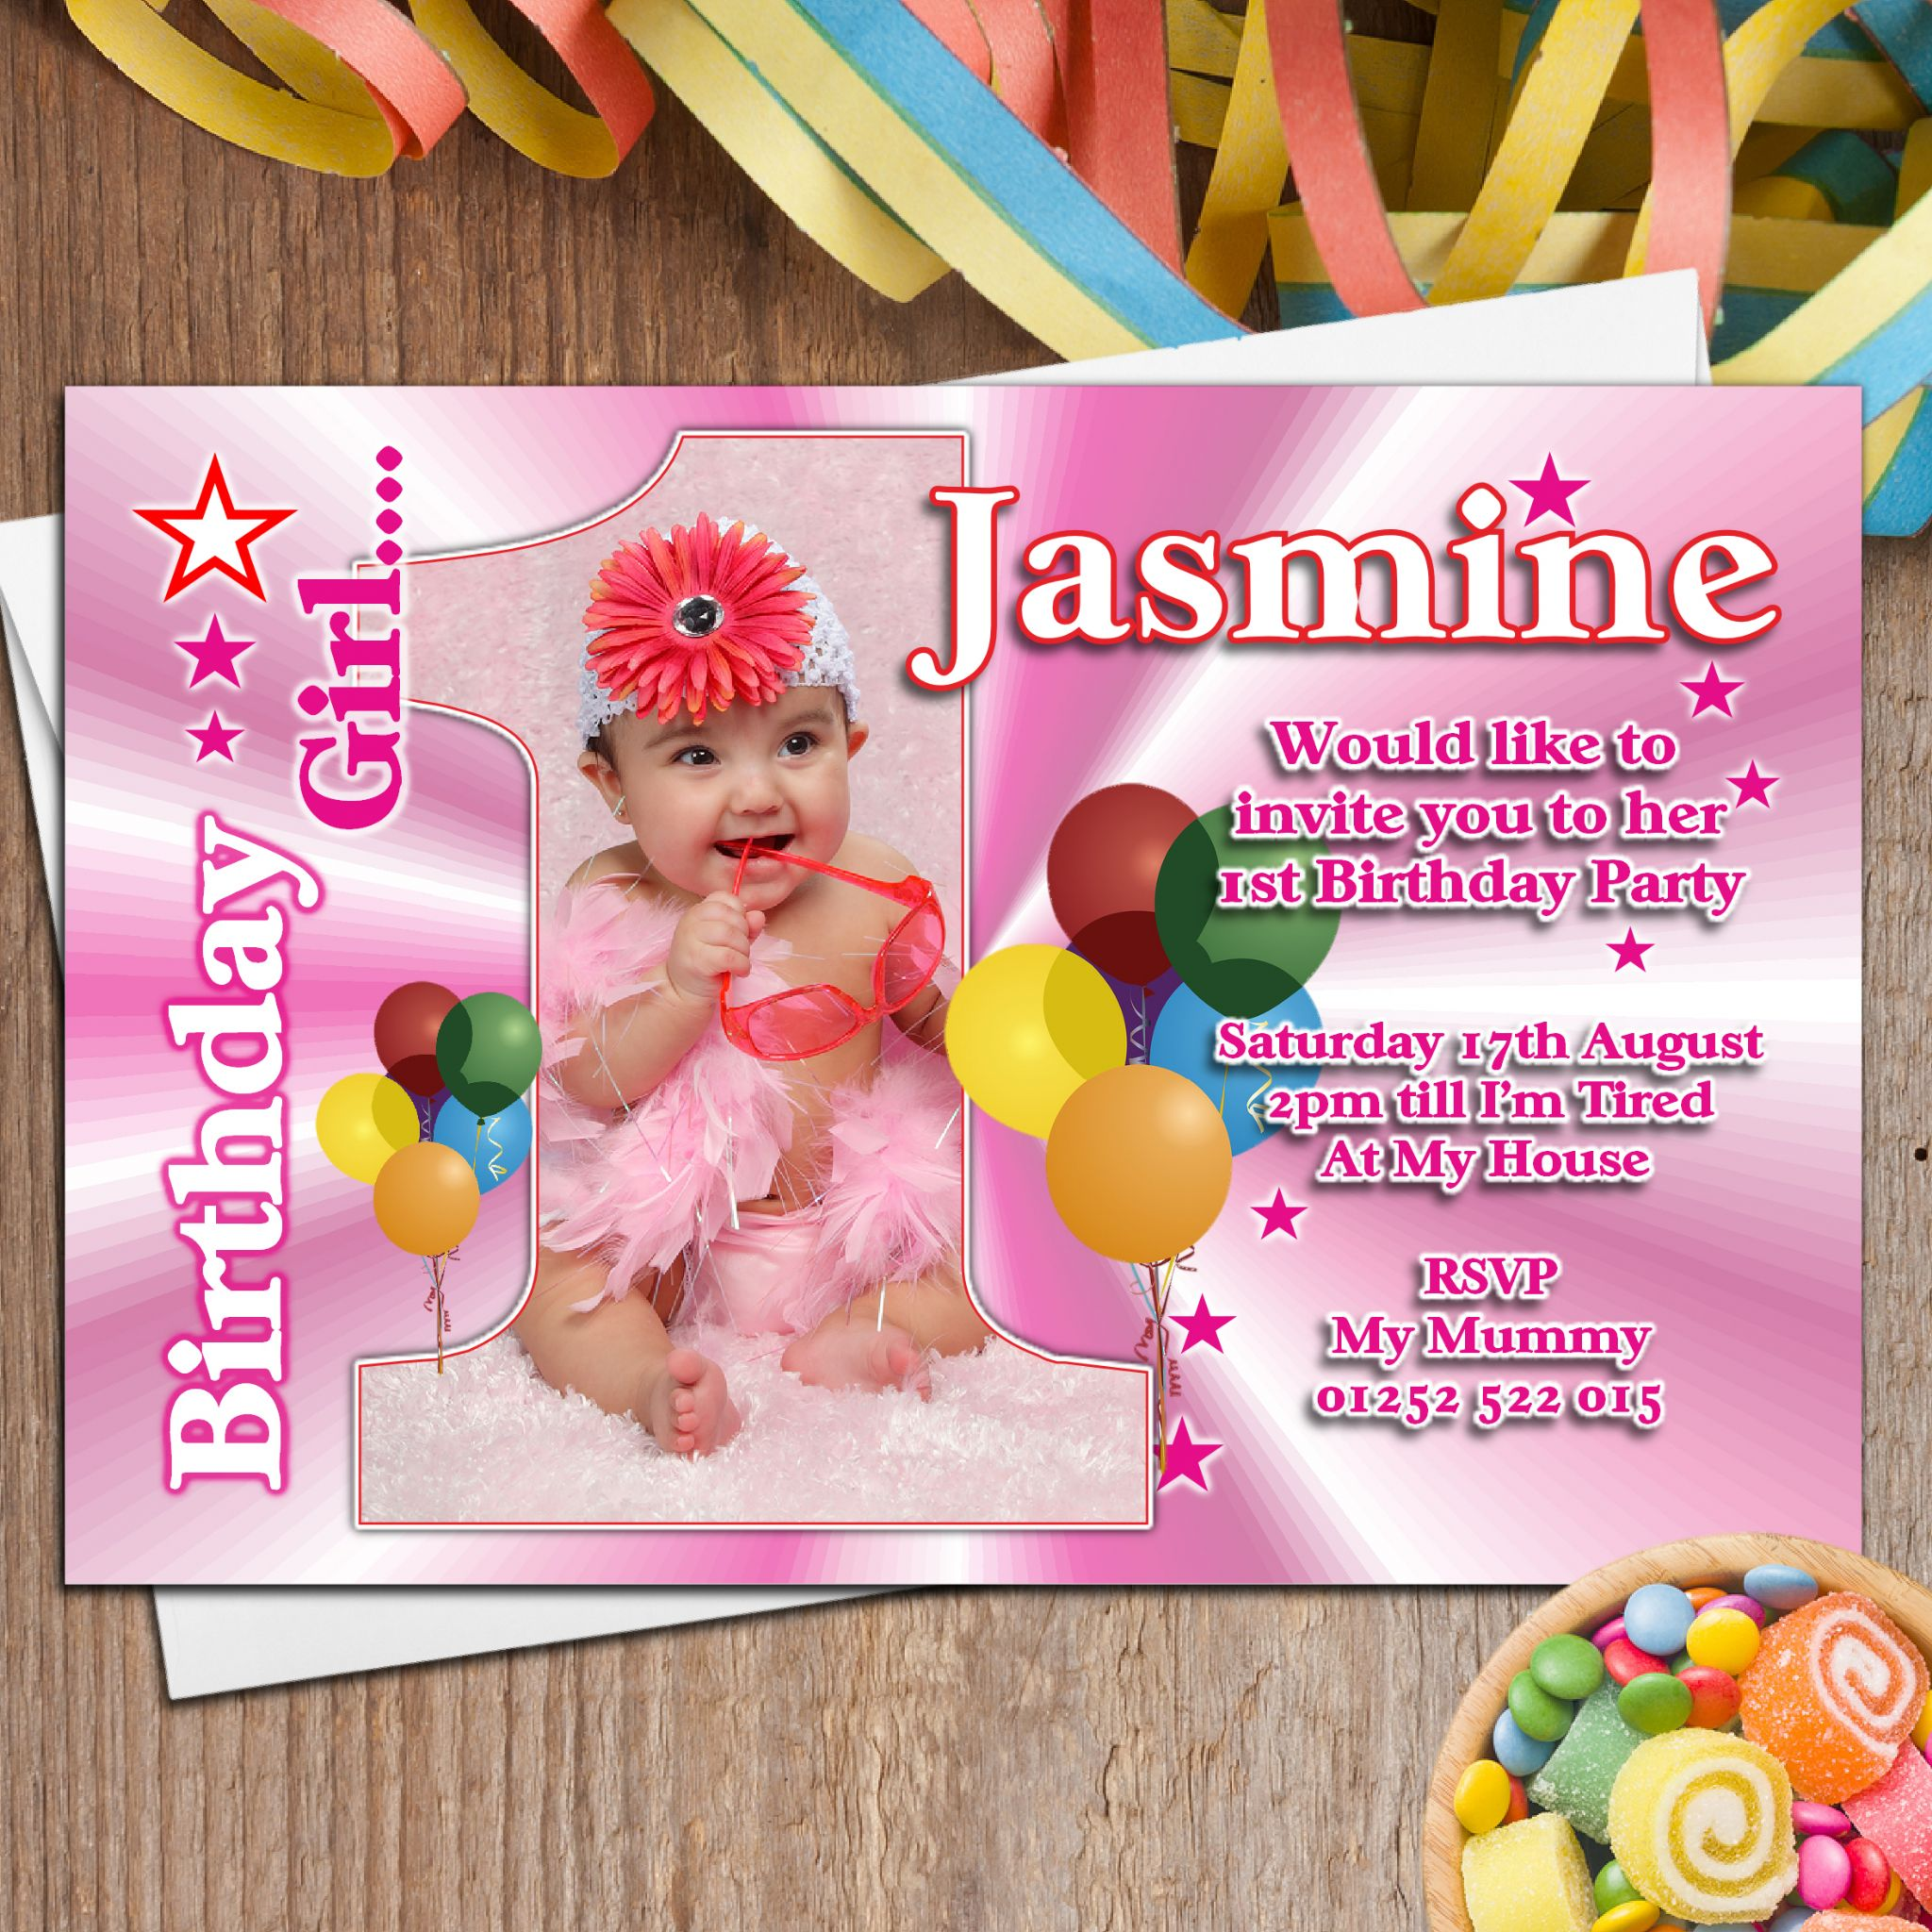 10-girls-personalised-first-1st-birthday-party-photo-invitations -n21-5105-p.jpg